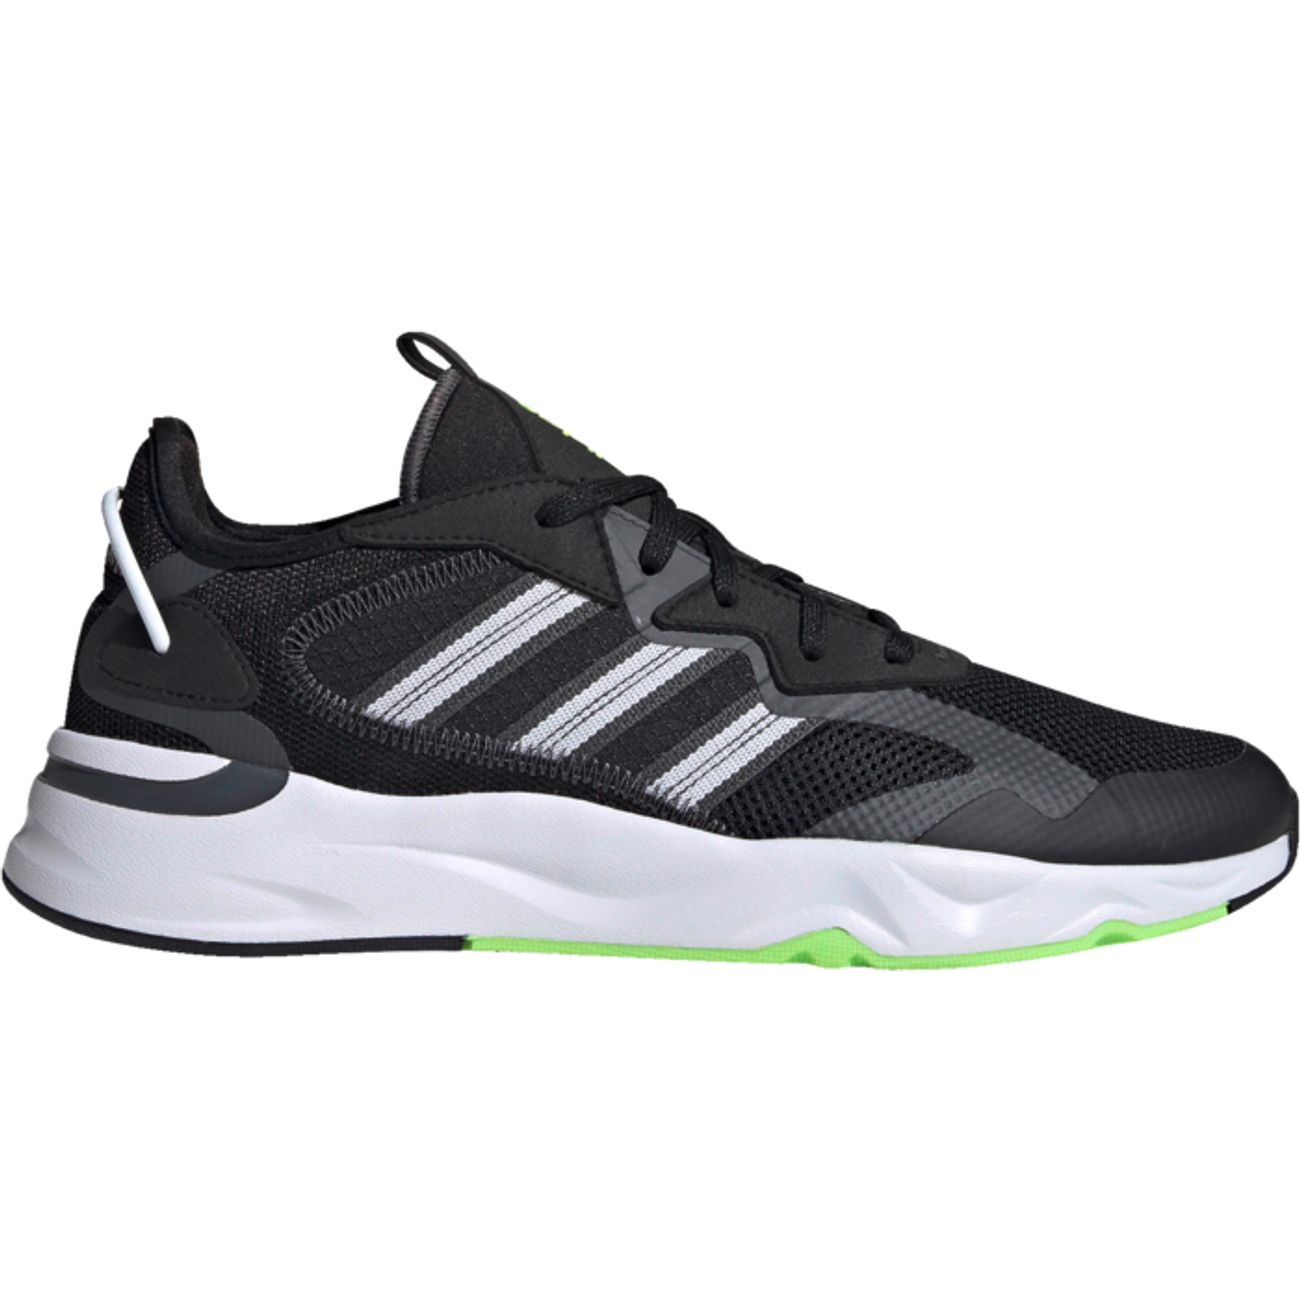 CHAUSSURES BASSES running homme ADIDAS FUTUREFLOW